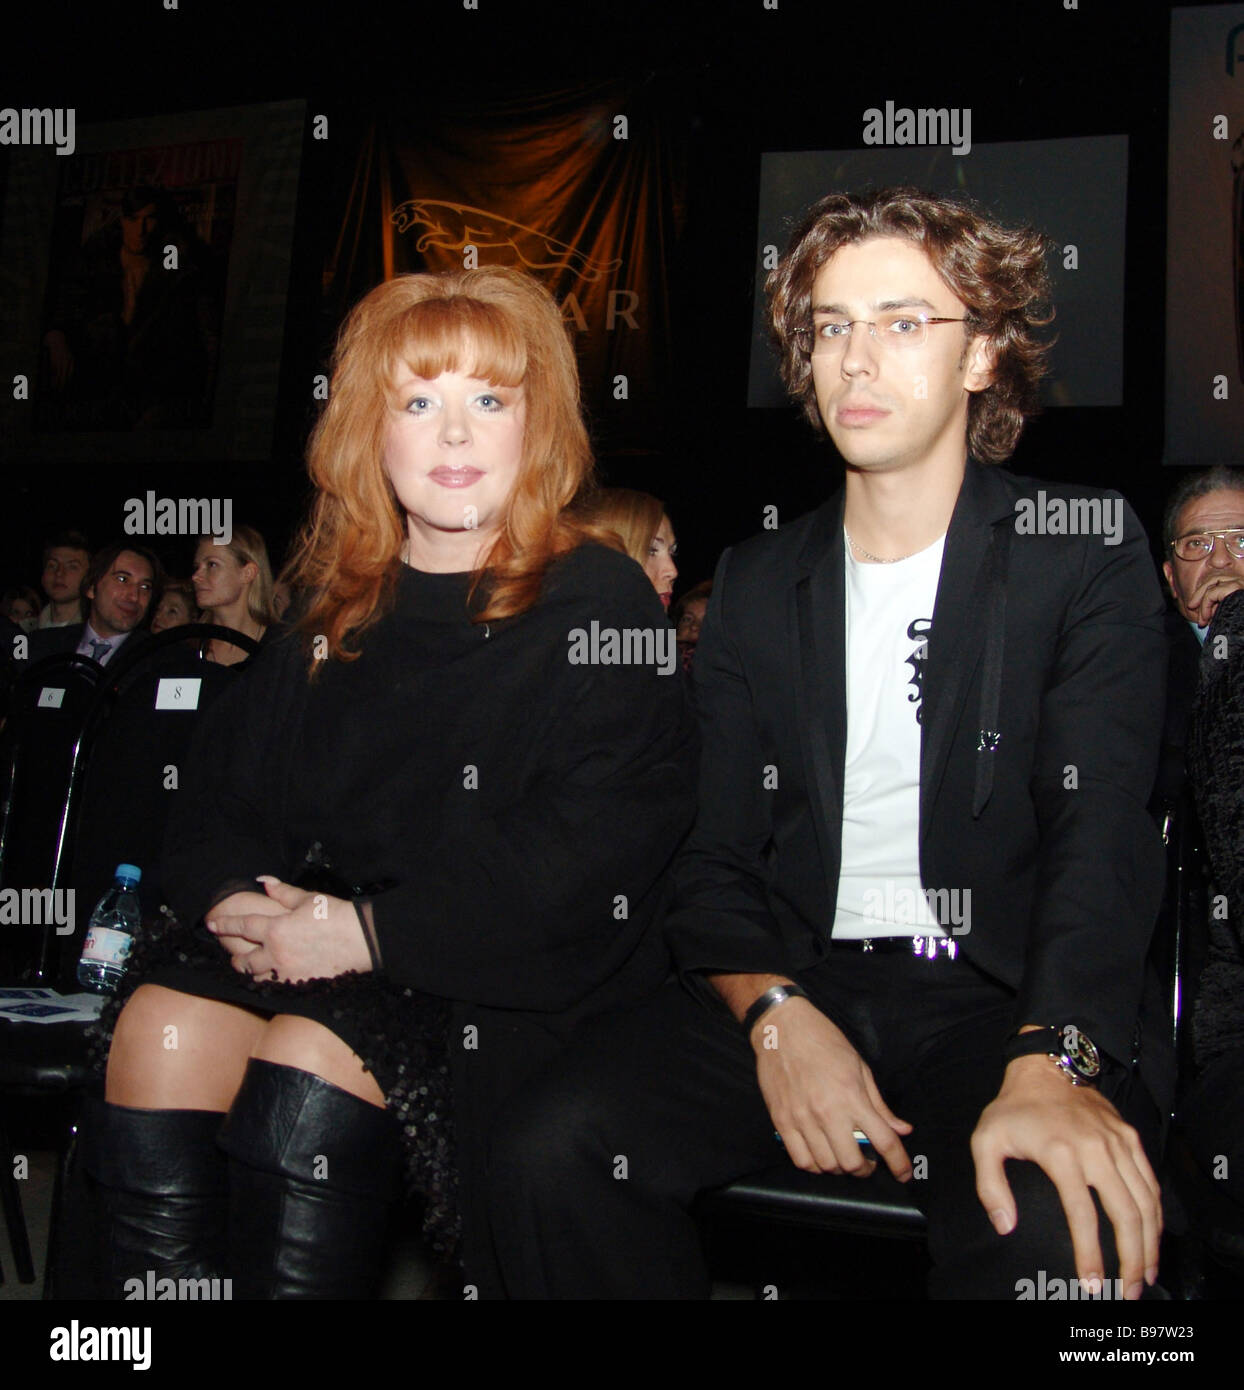 Alla Pugacheva and Maxim Galkin named their son after a fairytale character 12/16/2013 8